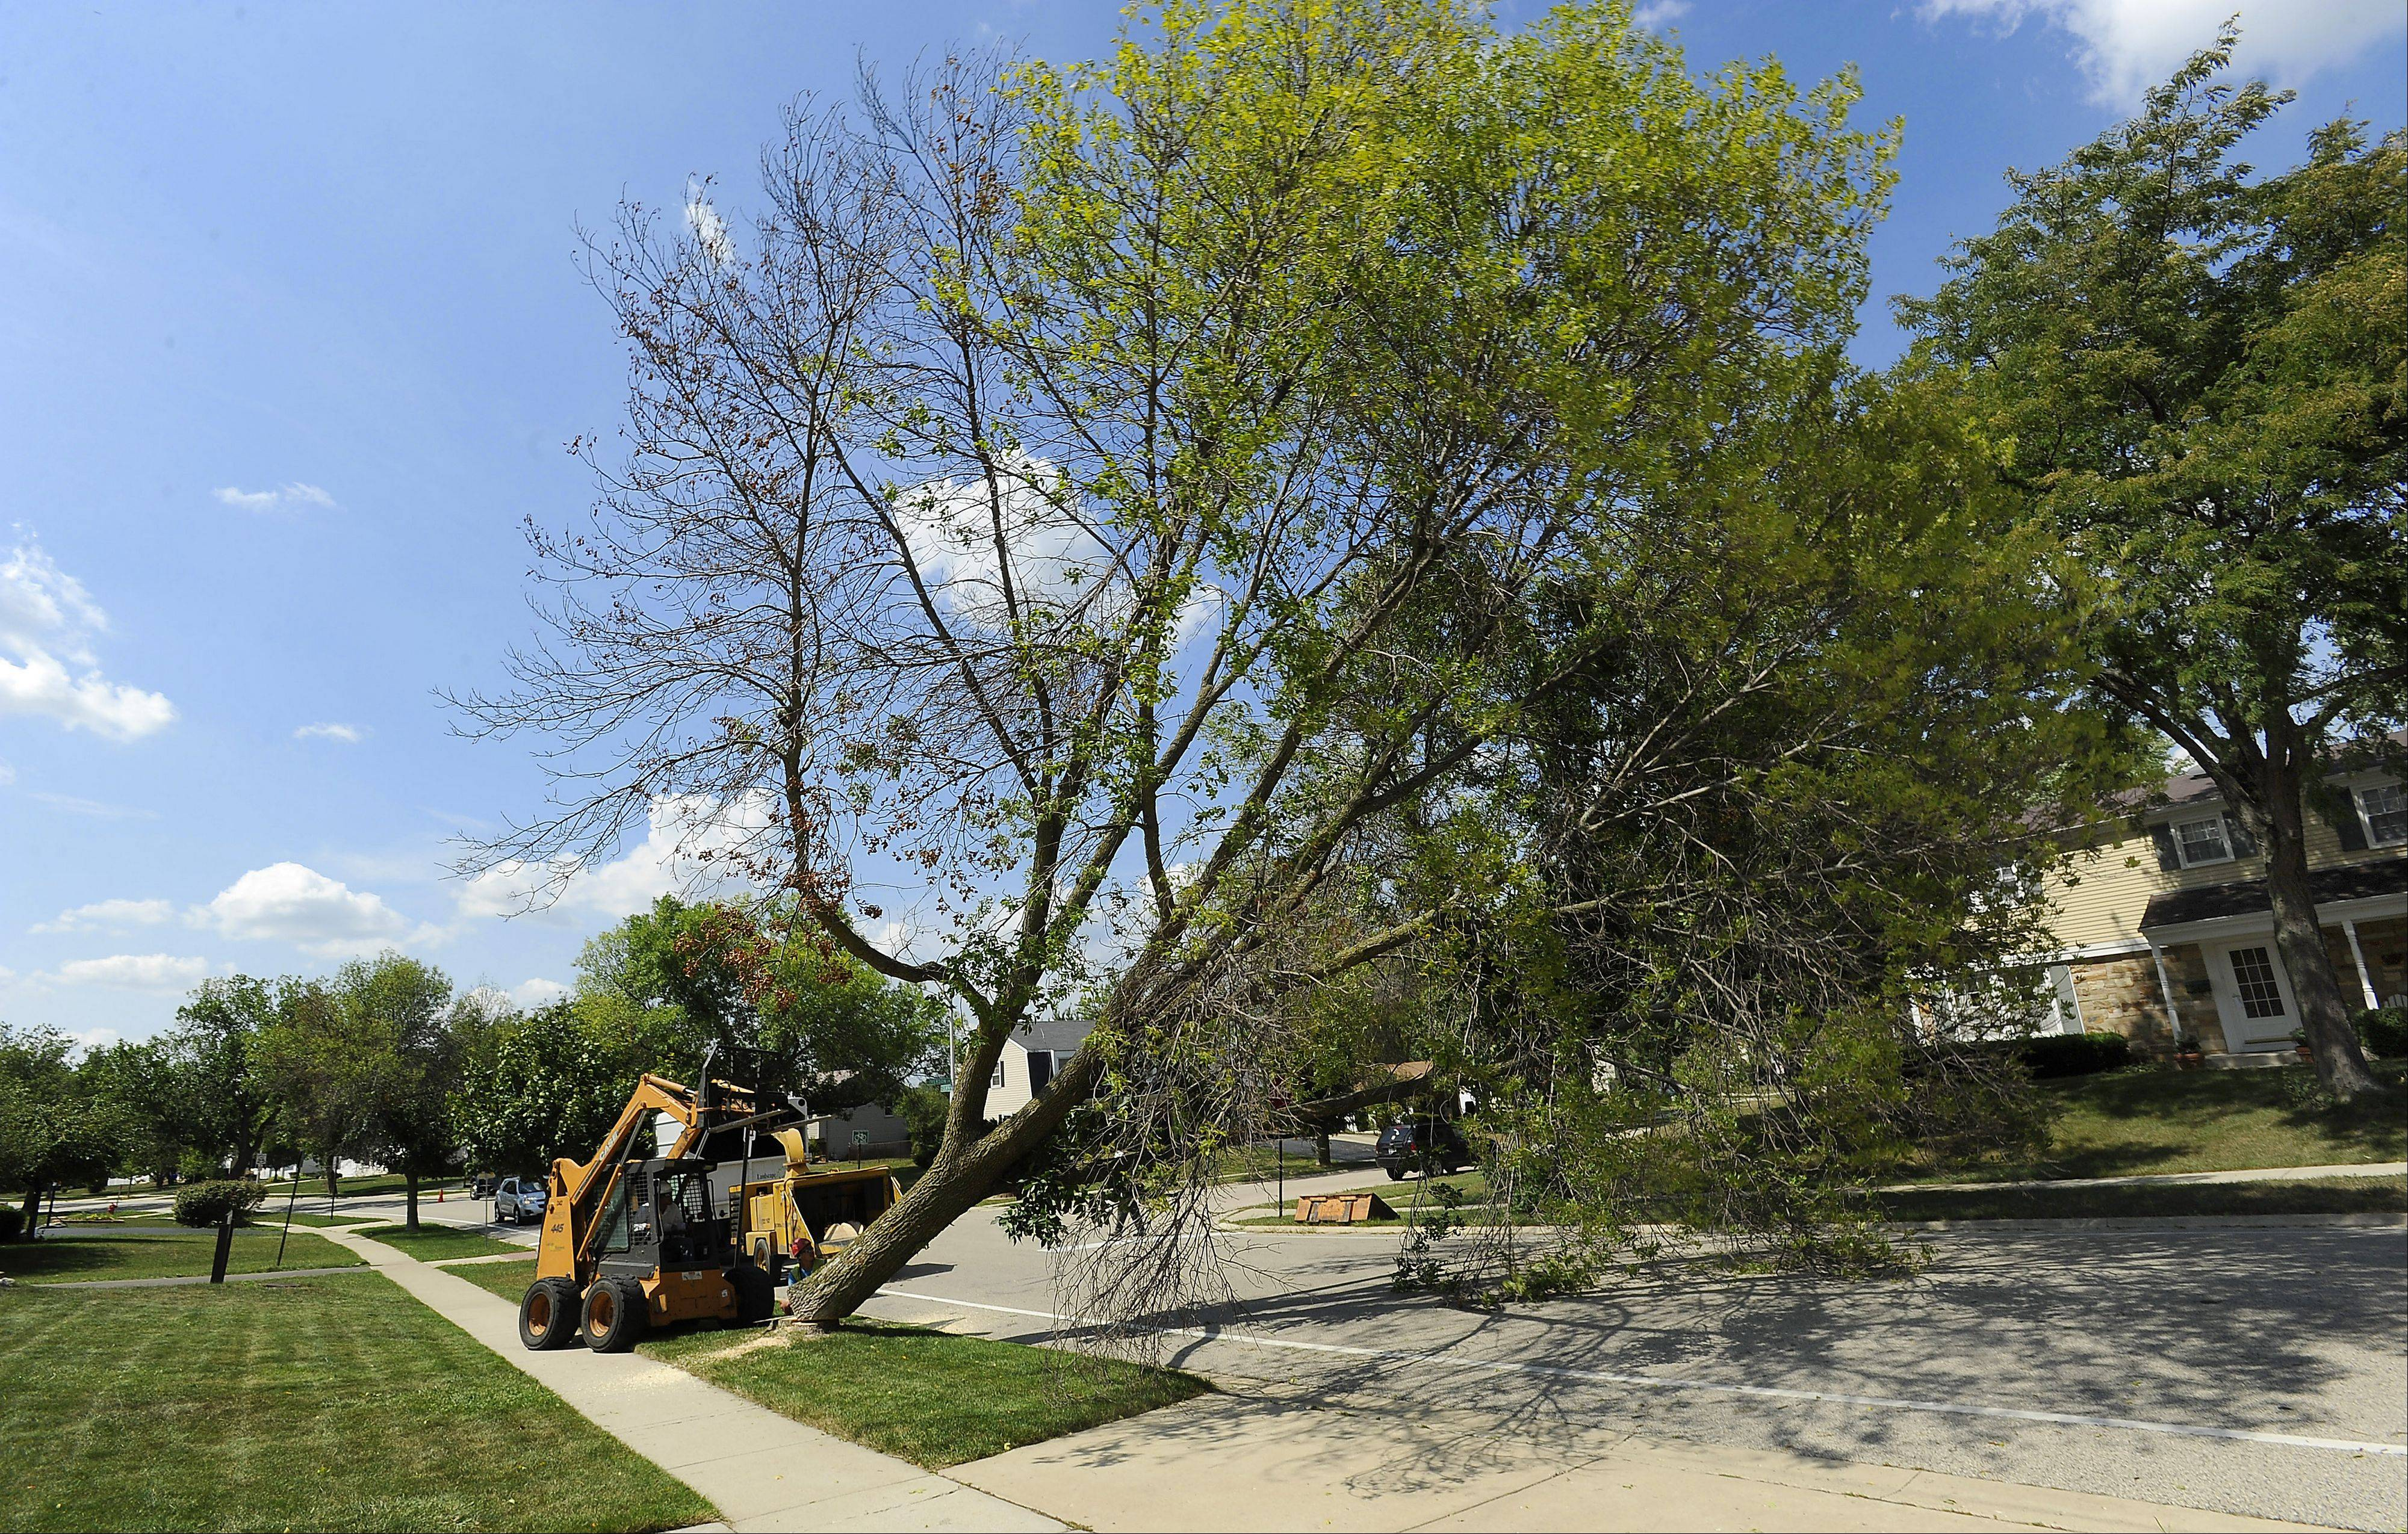 Workers of LandScapes Concepts of Grayslake push over a ash tree located on Colwyn Drive in Schaumburg. More than 1,500 trees are slated for the chopping block.